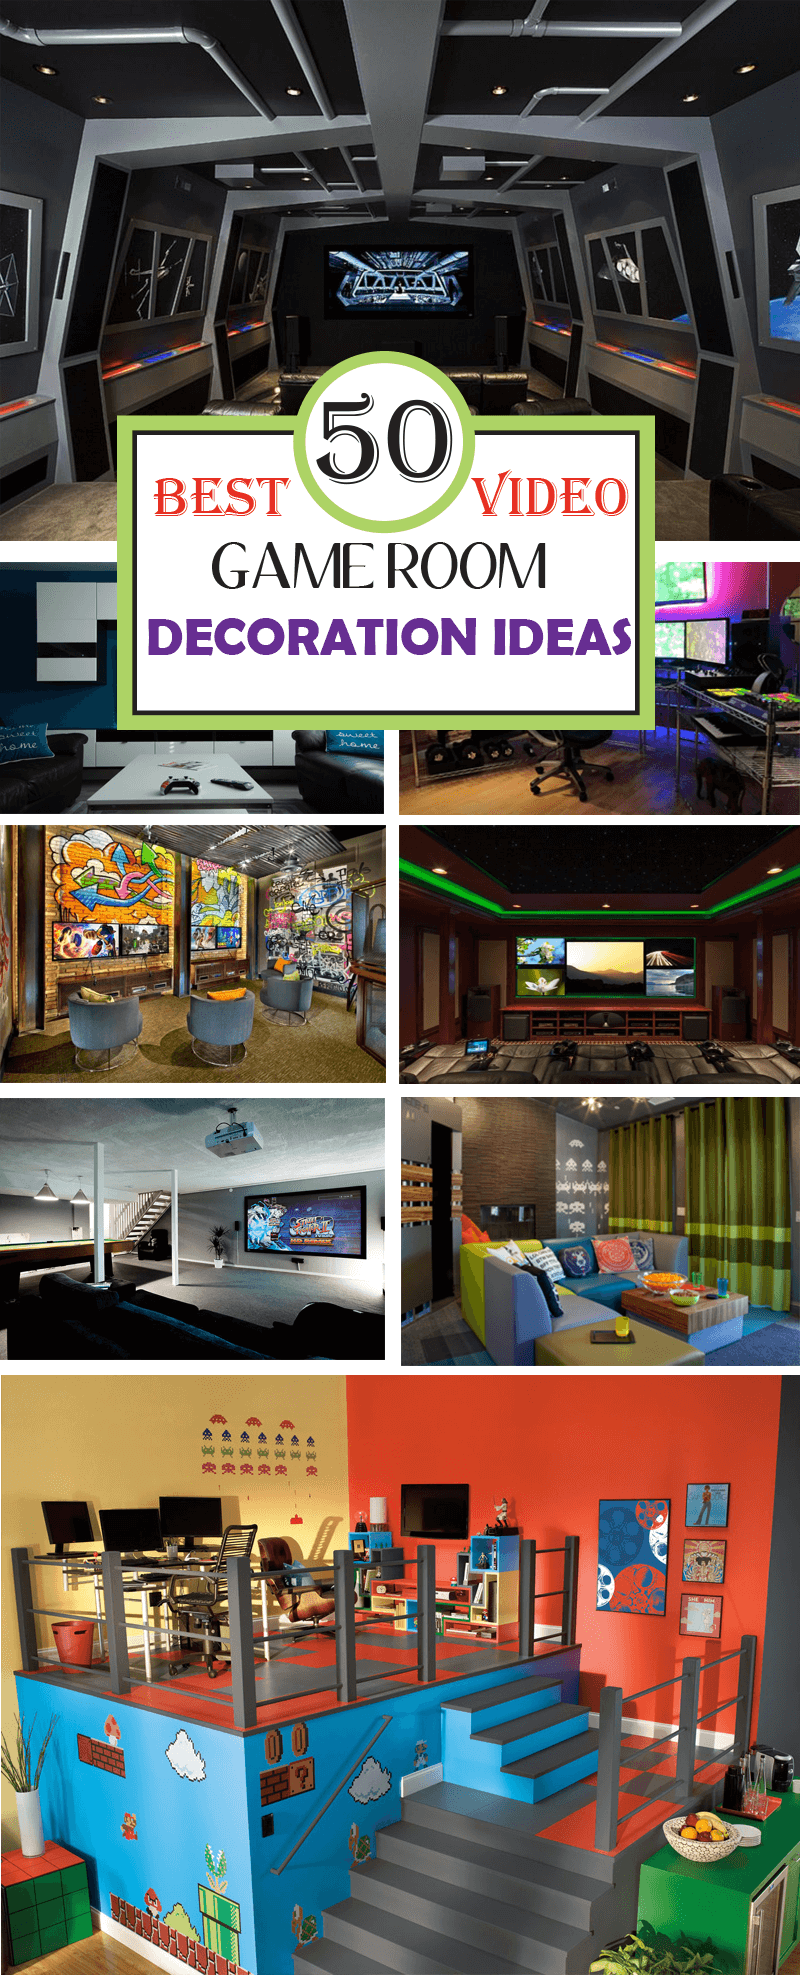 Video Game Room Decoration Ideas